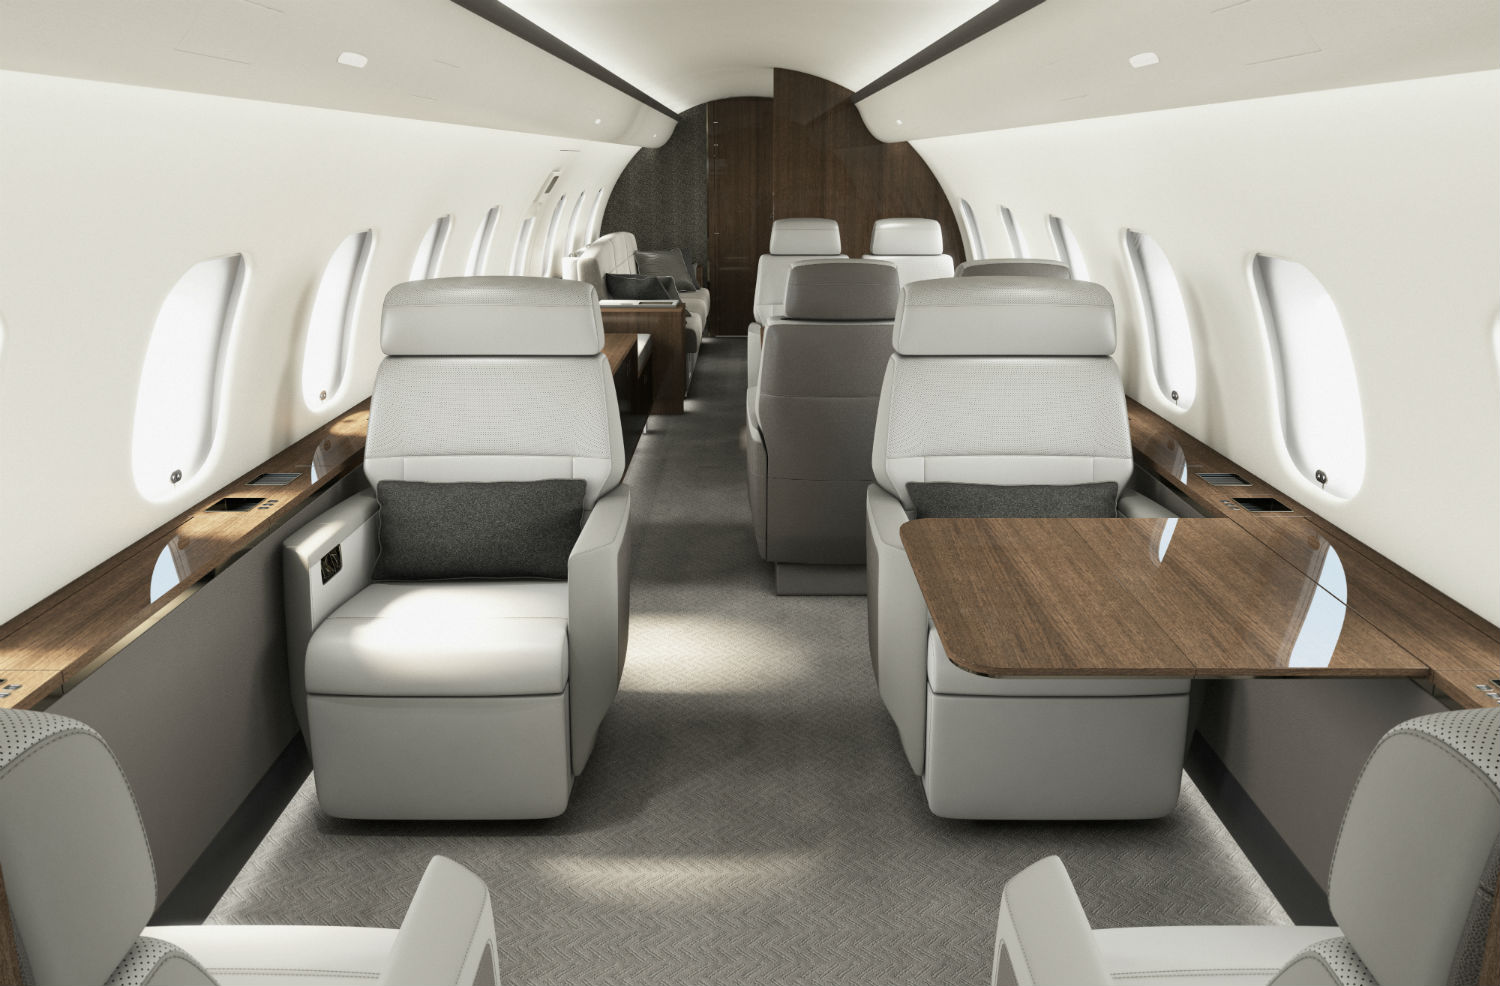 Bombardier introduces showstopping Premier cabin for